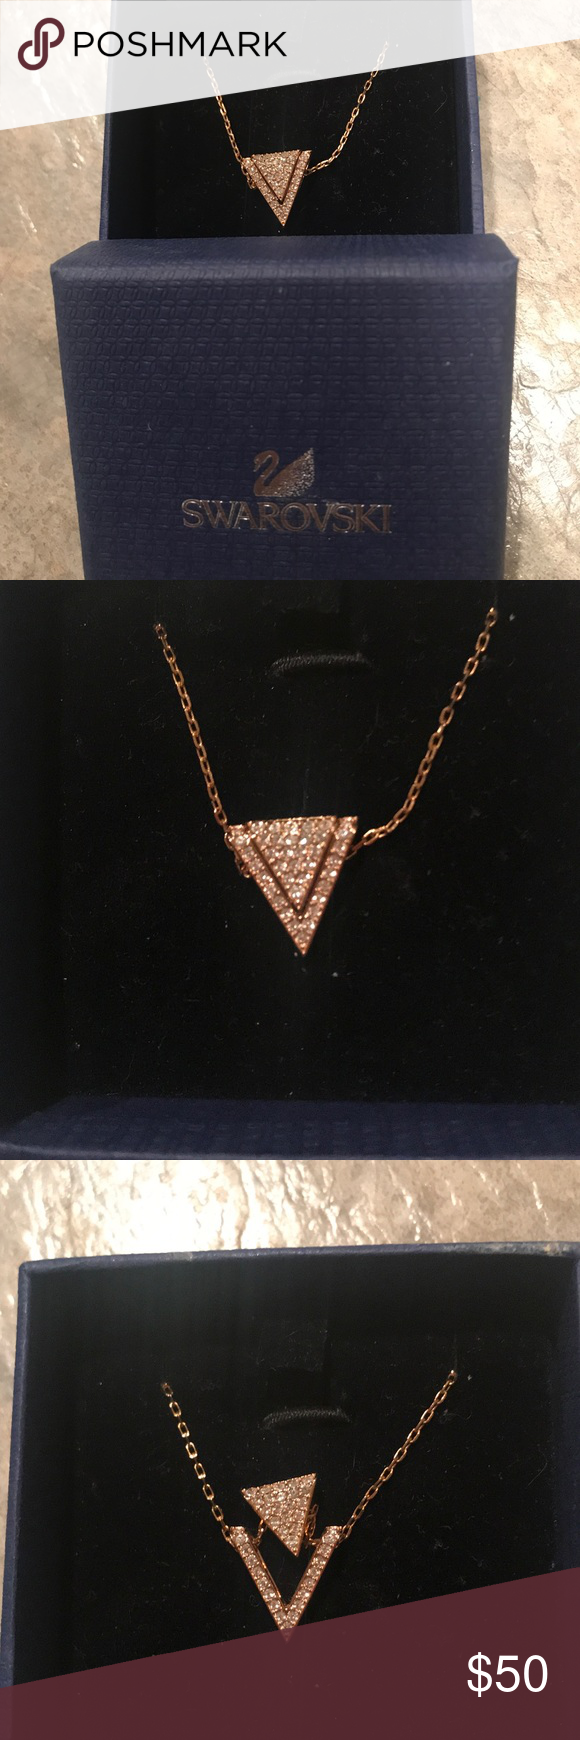 Swarovski necklace beautiful rosegold colored necklace set with